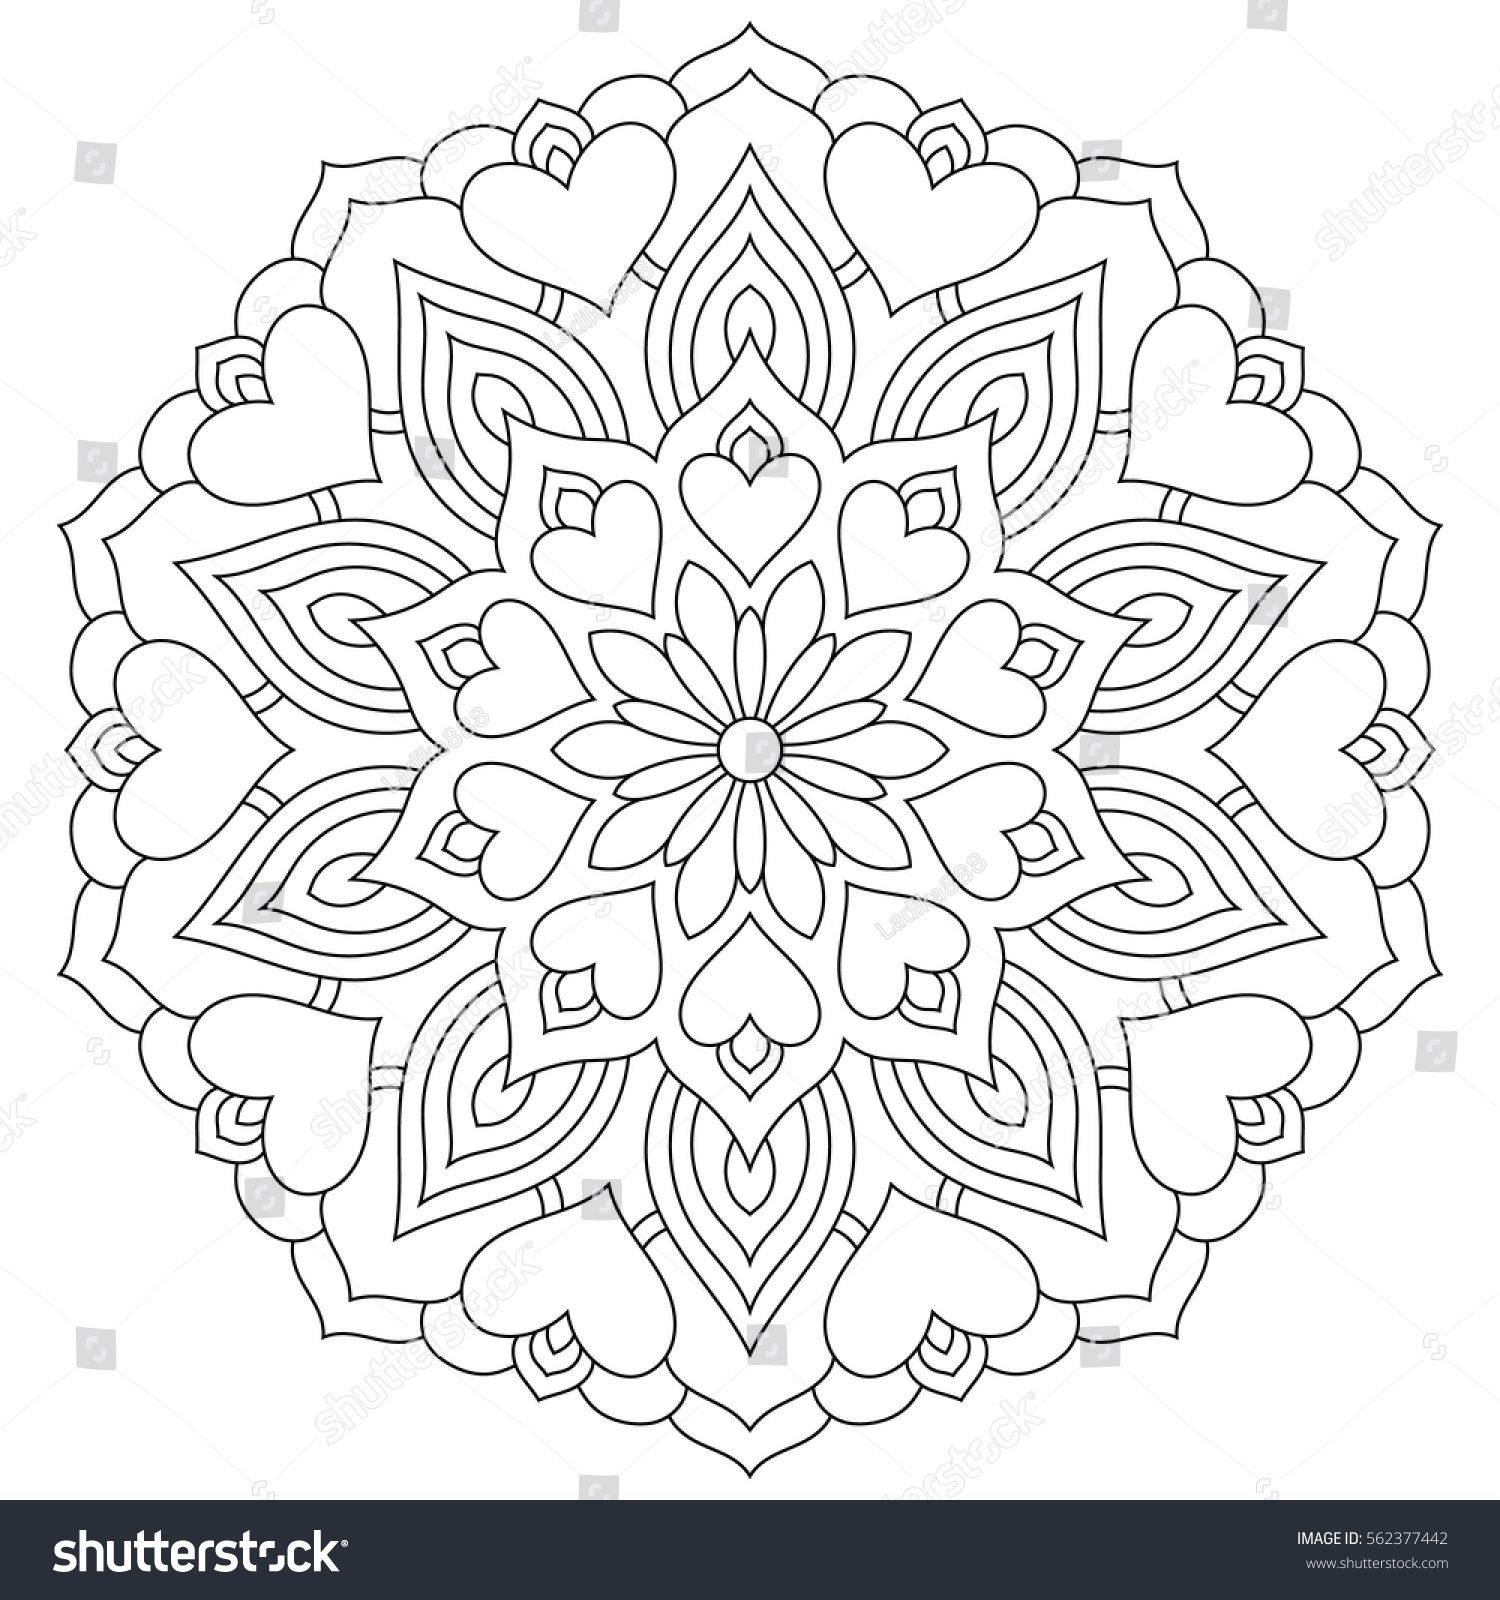 Flower mandala with hearts. Coloring page for Valentine's ...